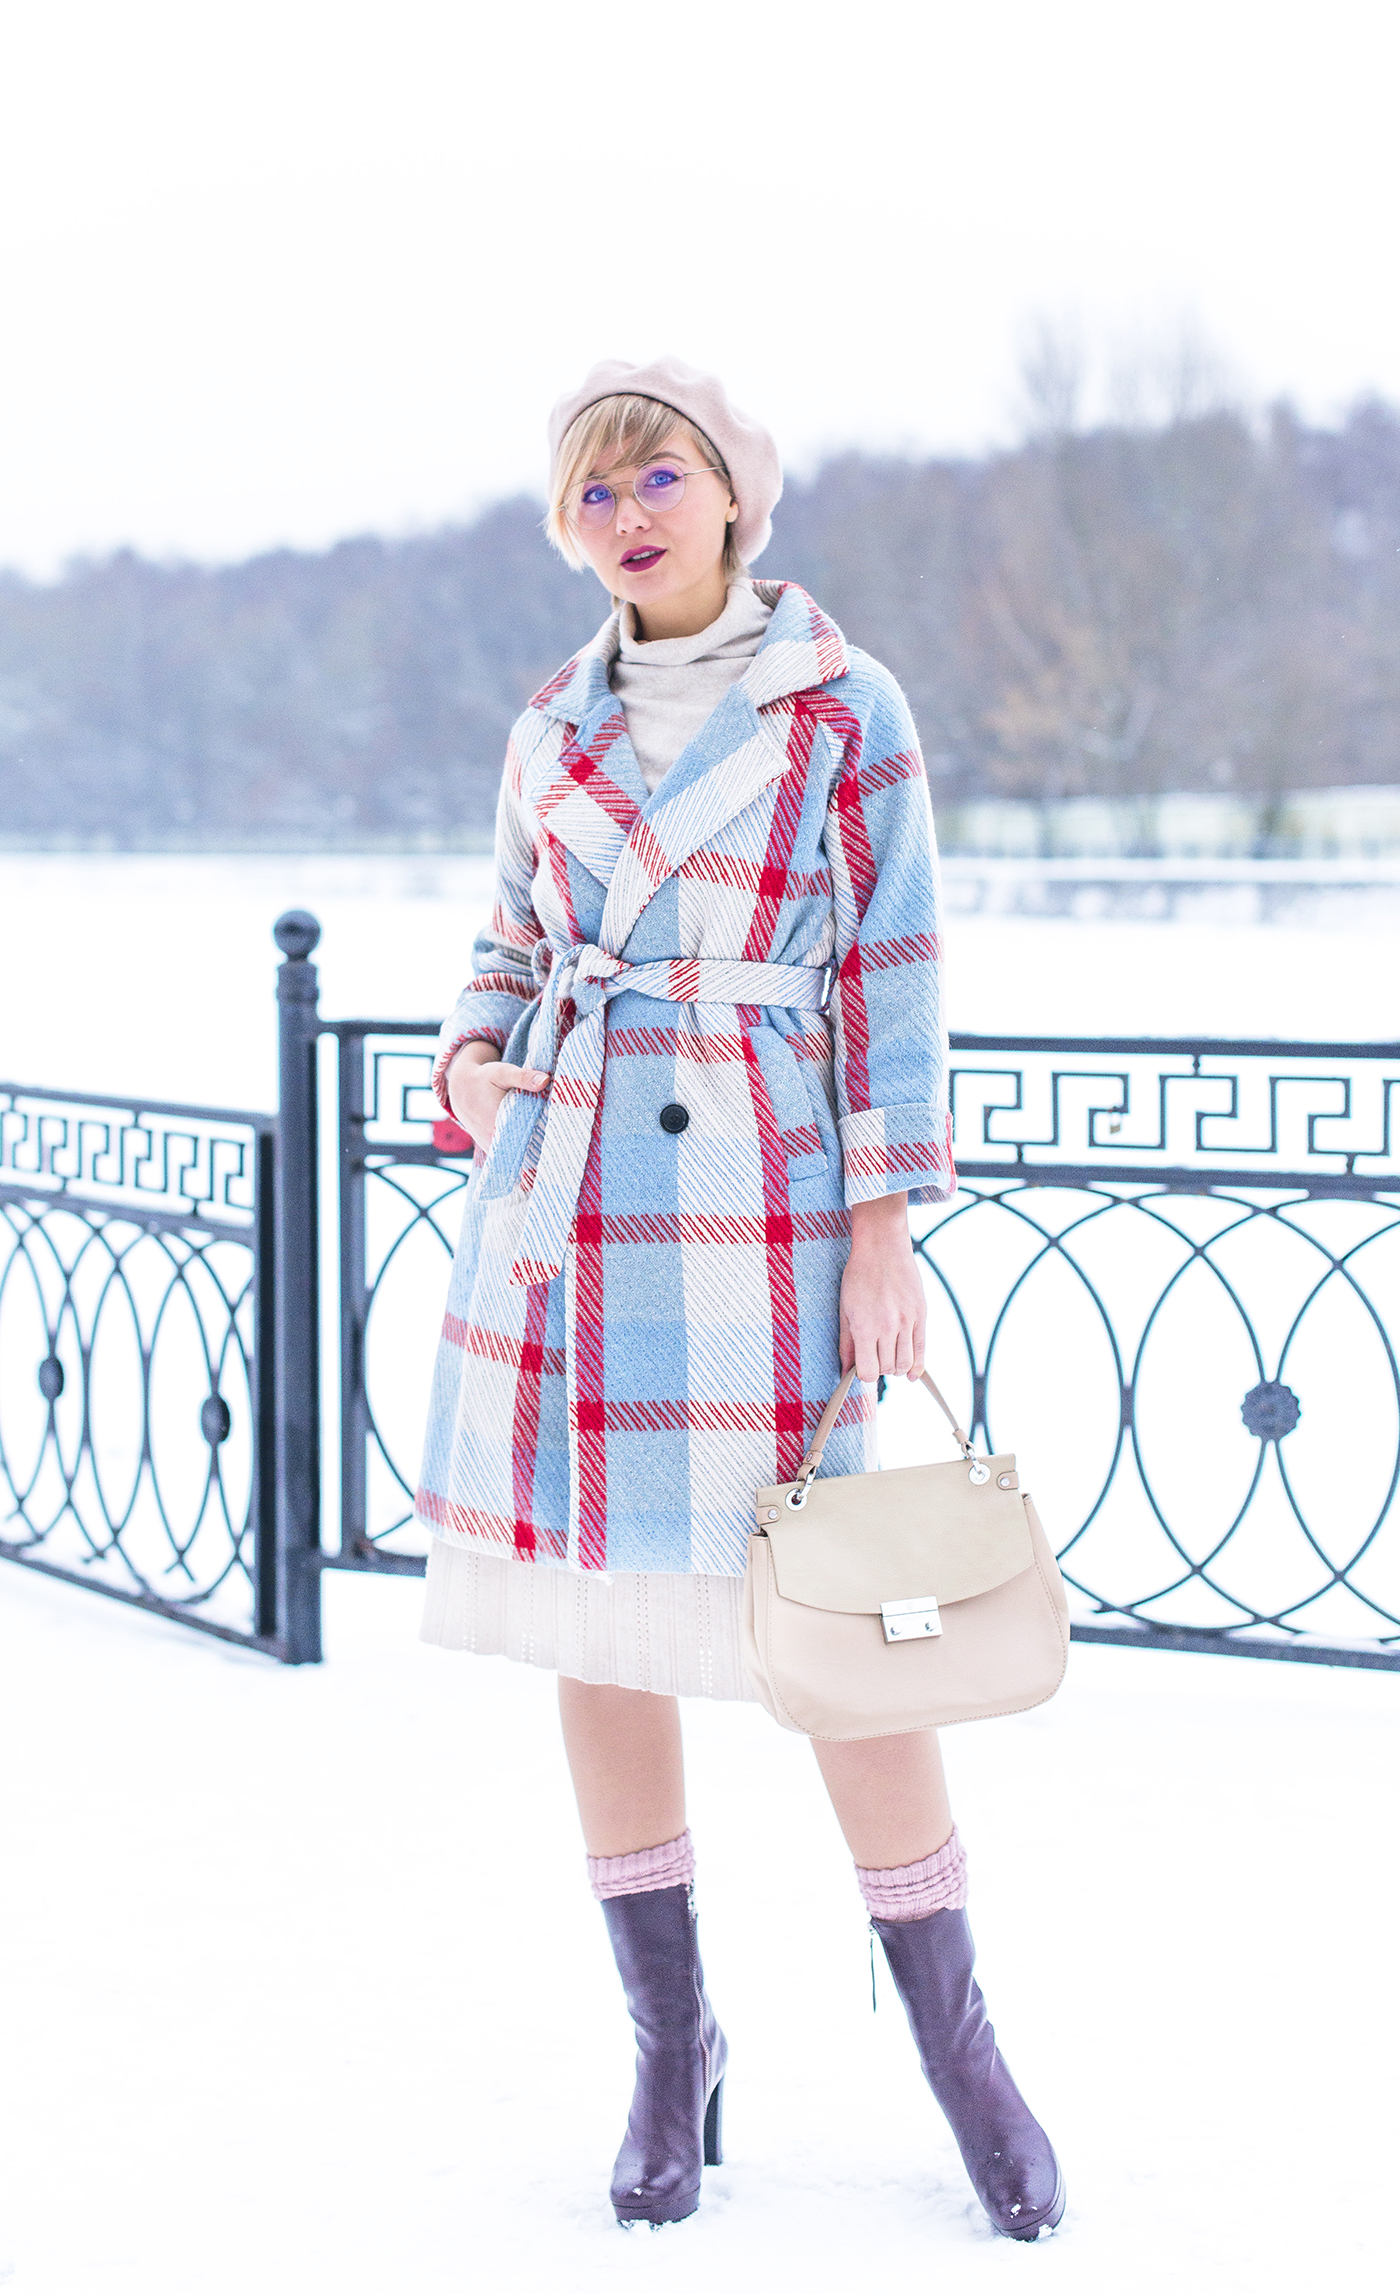 inspiration, streetstyle, autumn outfit, annamidday, top fashion blogger, top russian fashion blogger, фэшн блогер, русский блогер, известный блогер, топовый блогер, russian bloger, top russian blogger, streetfashion, russian fashion blogger, blogger, fashion, style, fashionista, модный блогер, российский блогер, ТОП блогер, ootd, lookoftheday, look, популярный блогер, российский модный блогер, russian girl, цветовые сочетания, streetstyle, красивая девушка, FW2017-2018, Marc Cain new collection, Анна миддэй, анна мидэй, Marc Cain, MBFWB, MBFW Berlin 2017, Berlin fashion week 2017, Fashion week, marc cain bag, marc cain Stylish boots, chicwish checked coat, chicwish, french beret